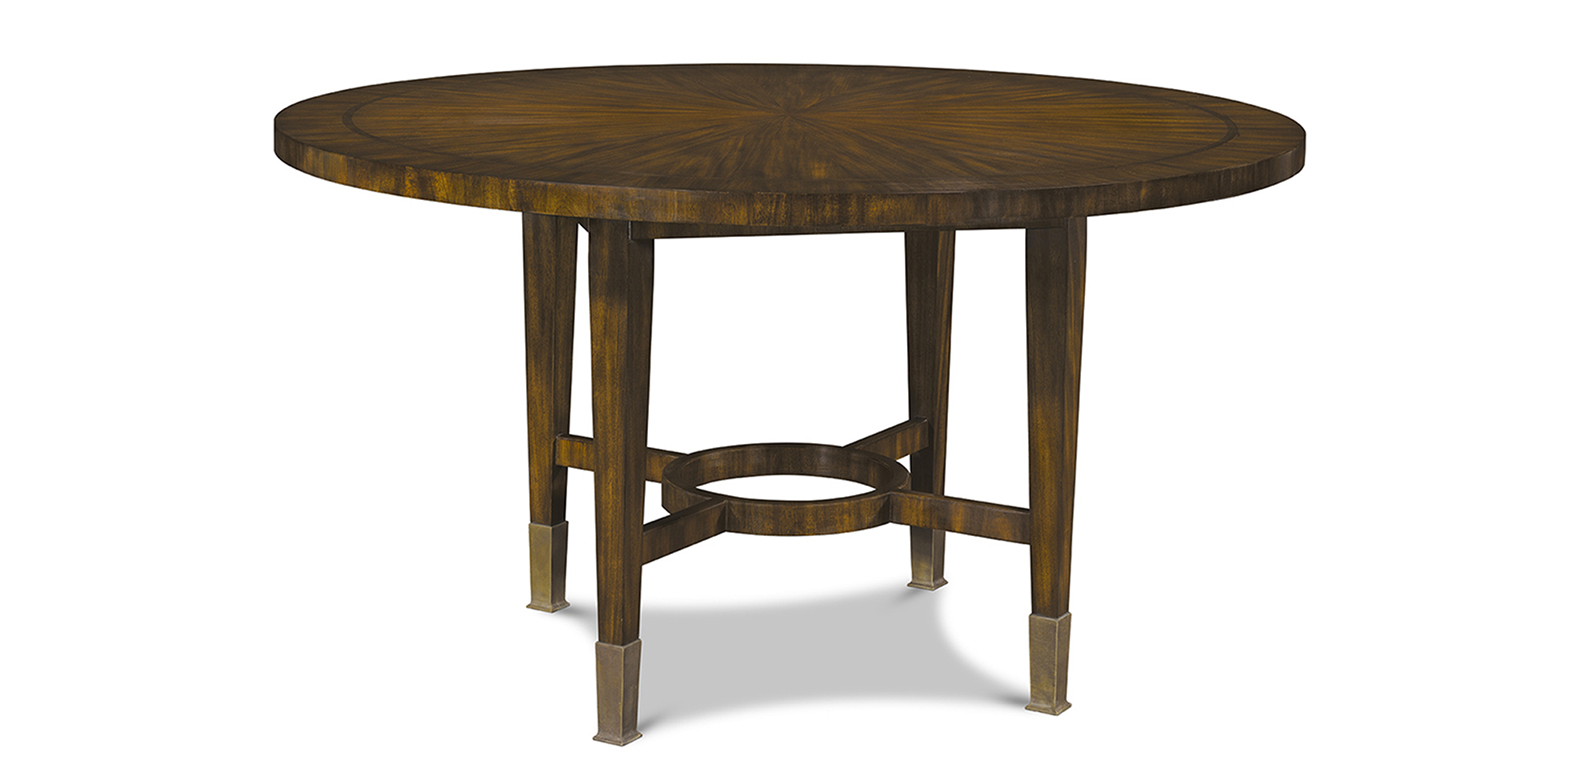 ARGUEIL II DINING TABLE 180